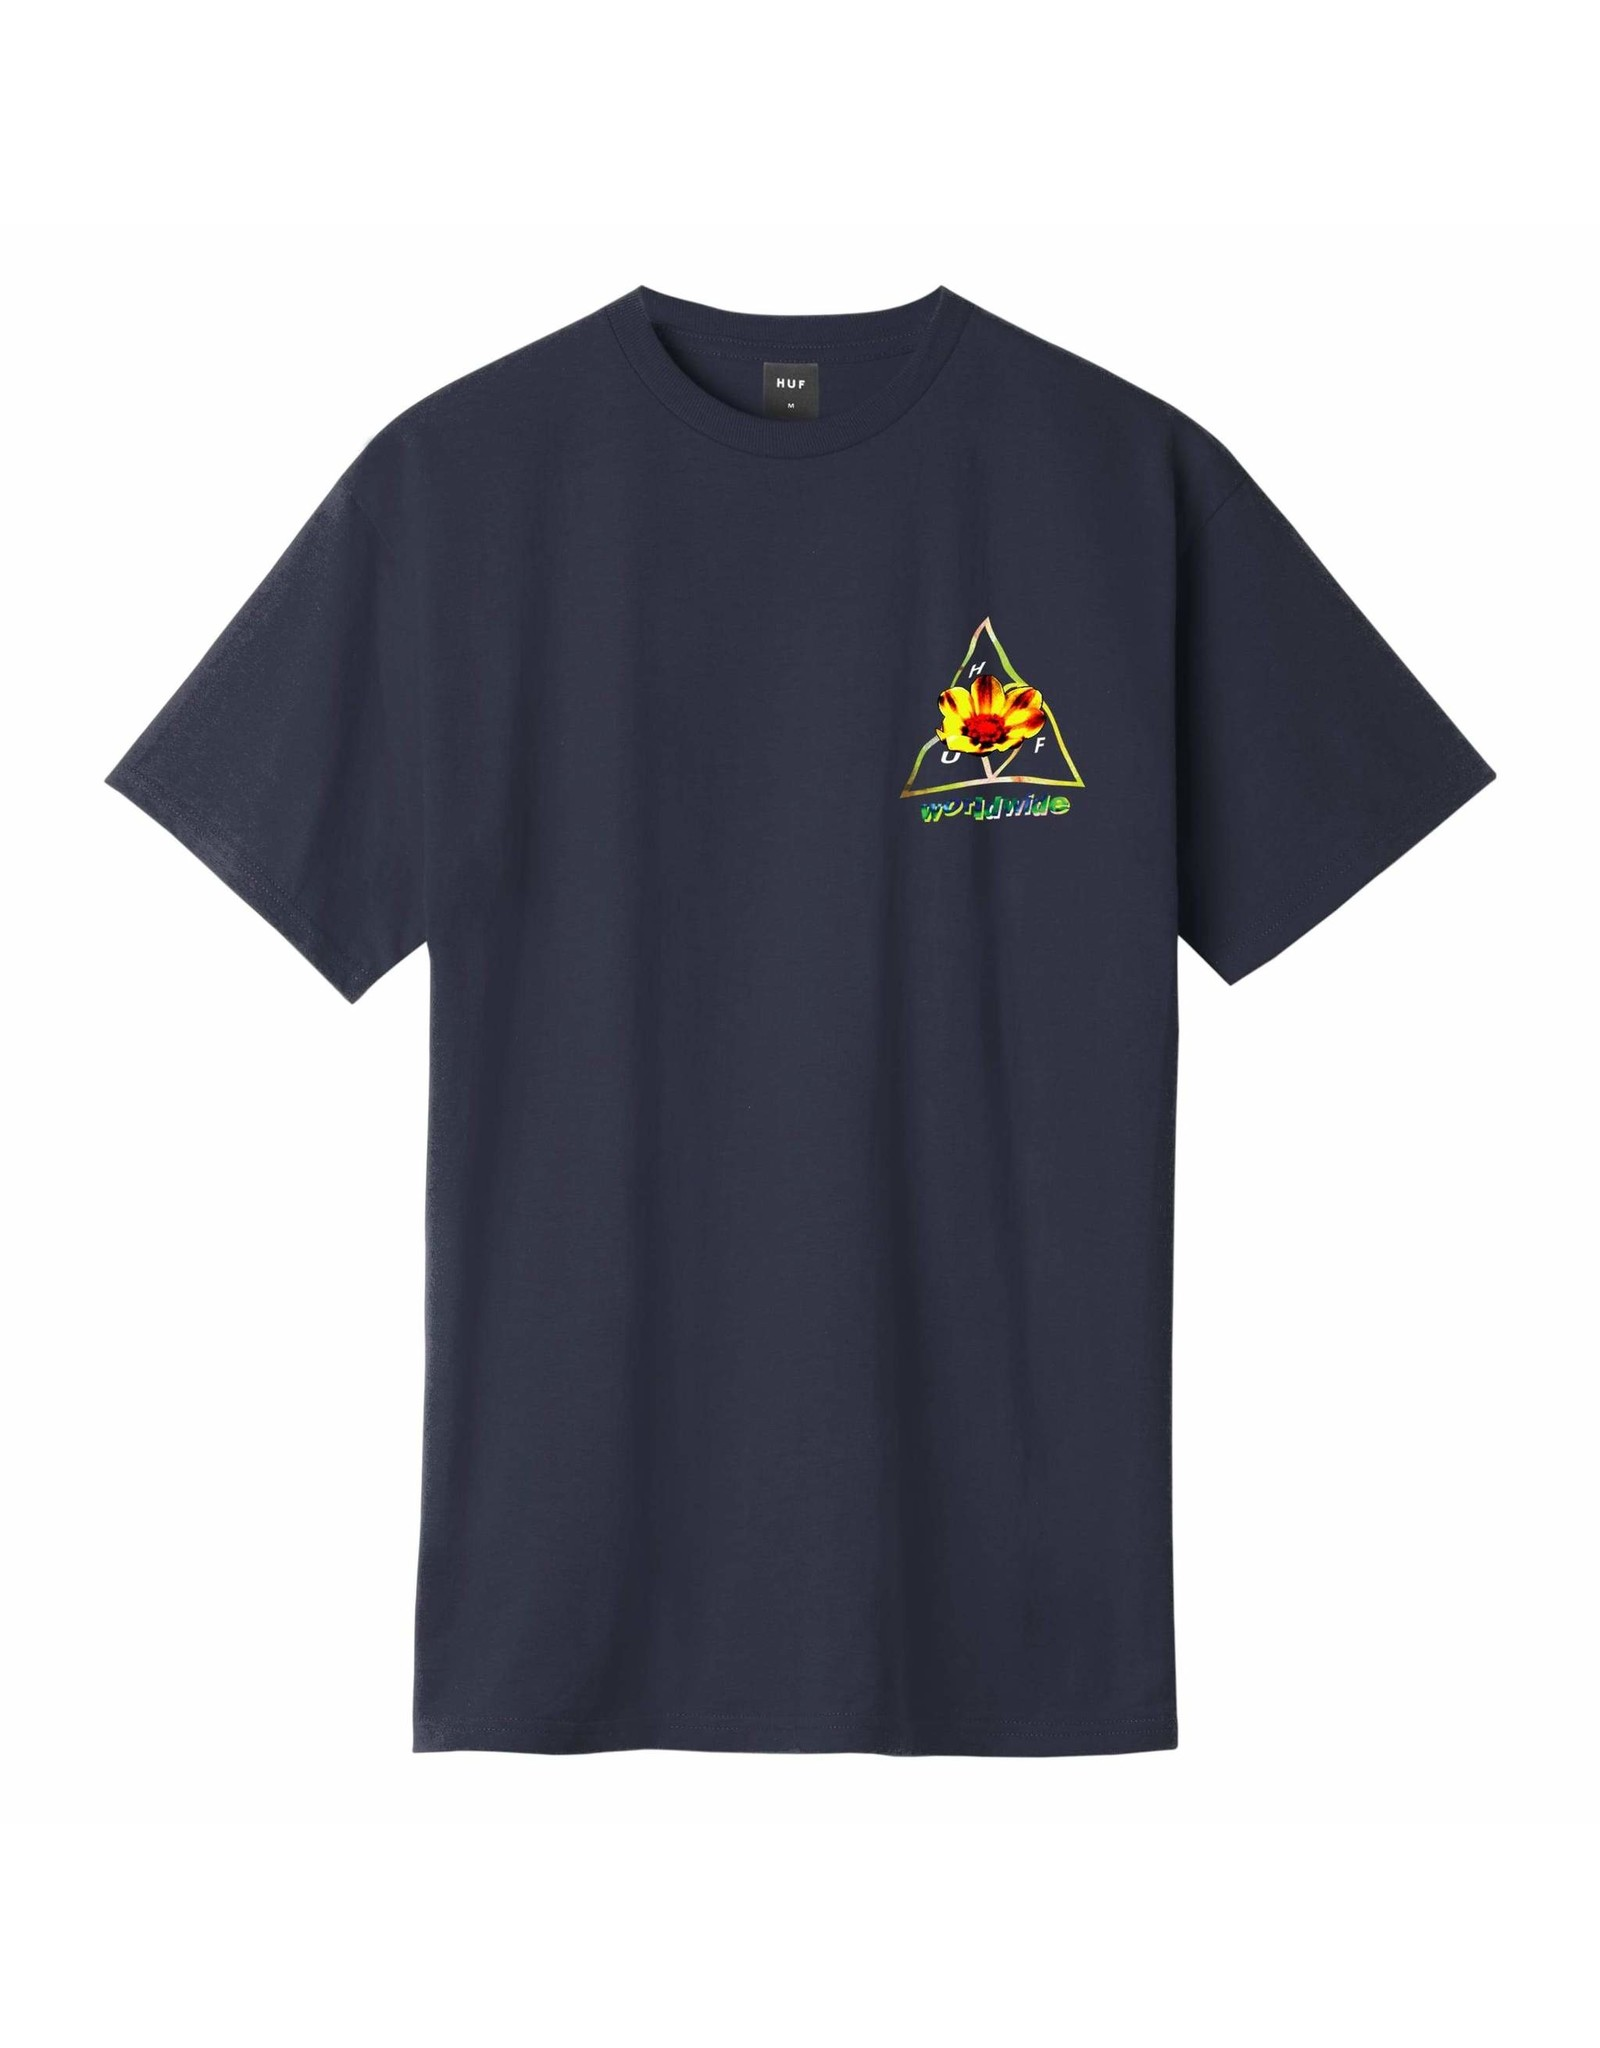 HUF Come Down TT S/S Tee - French navy